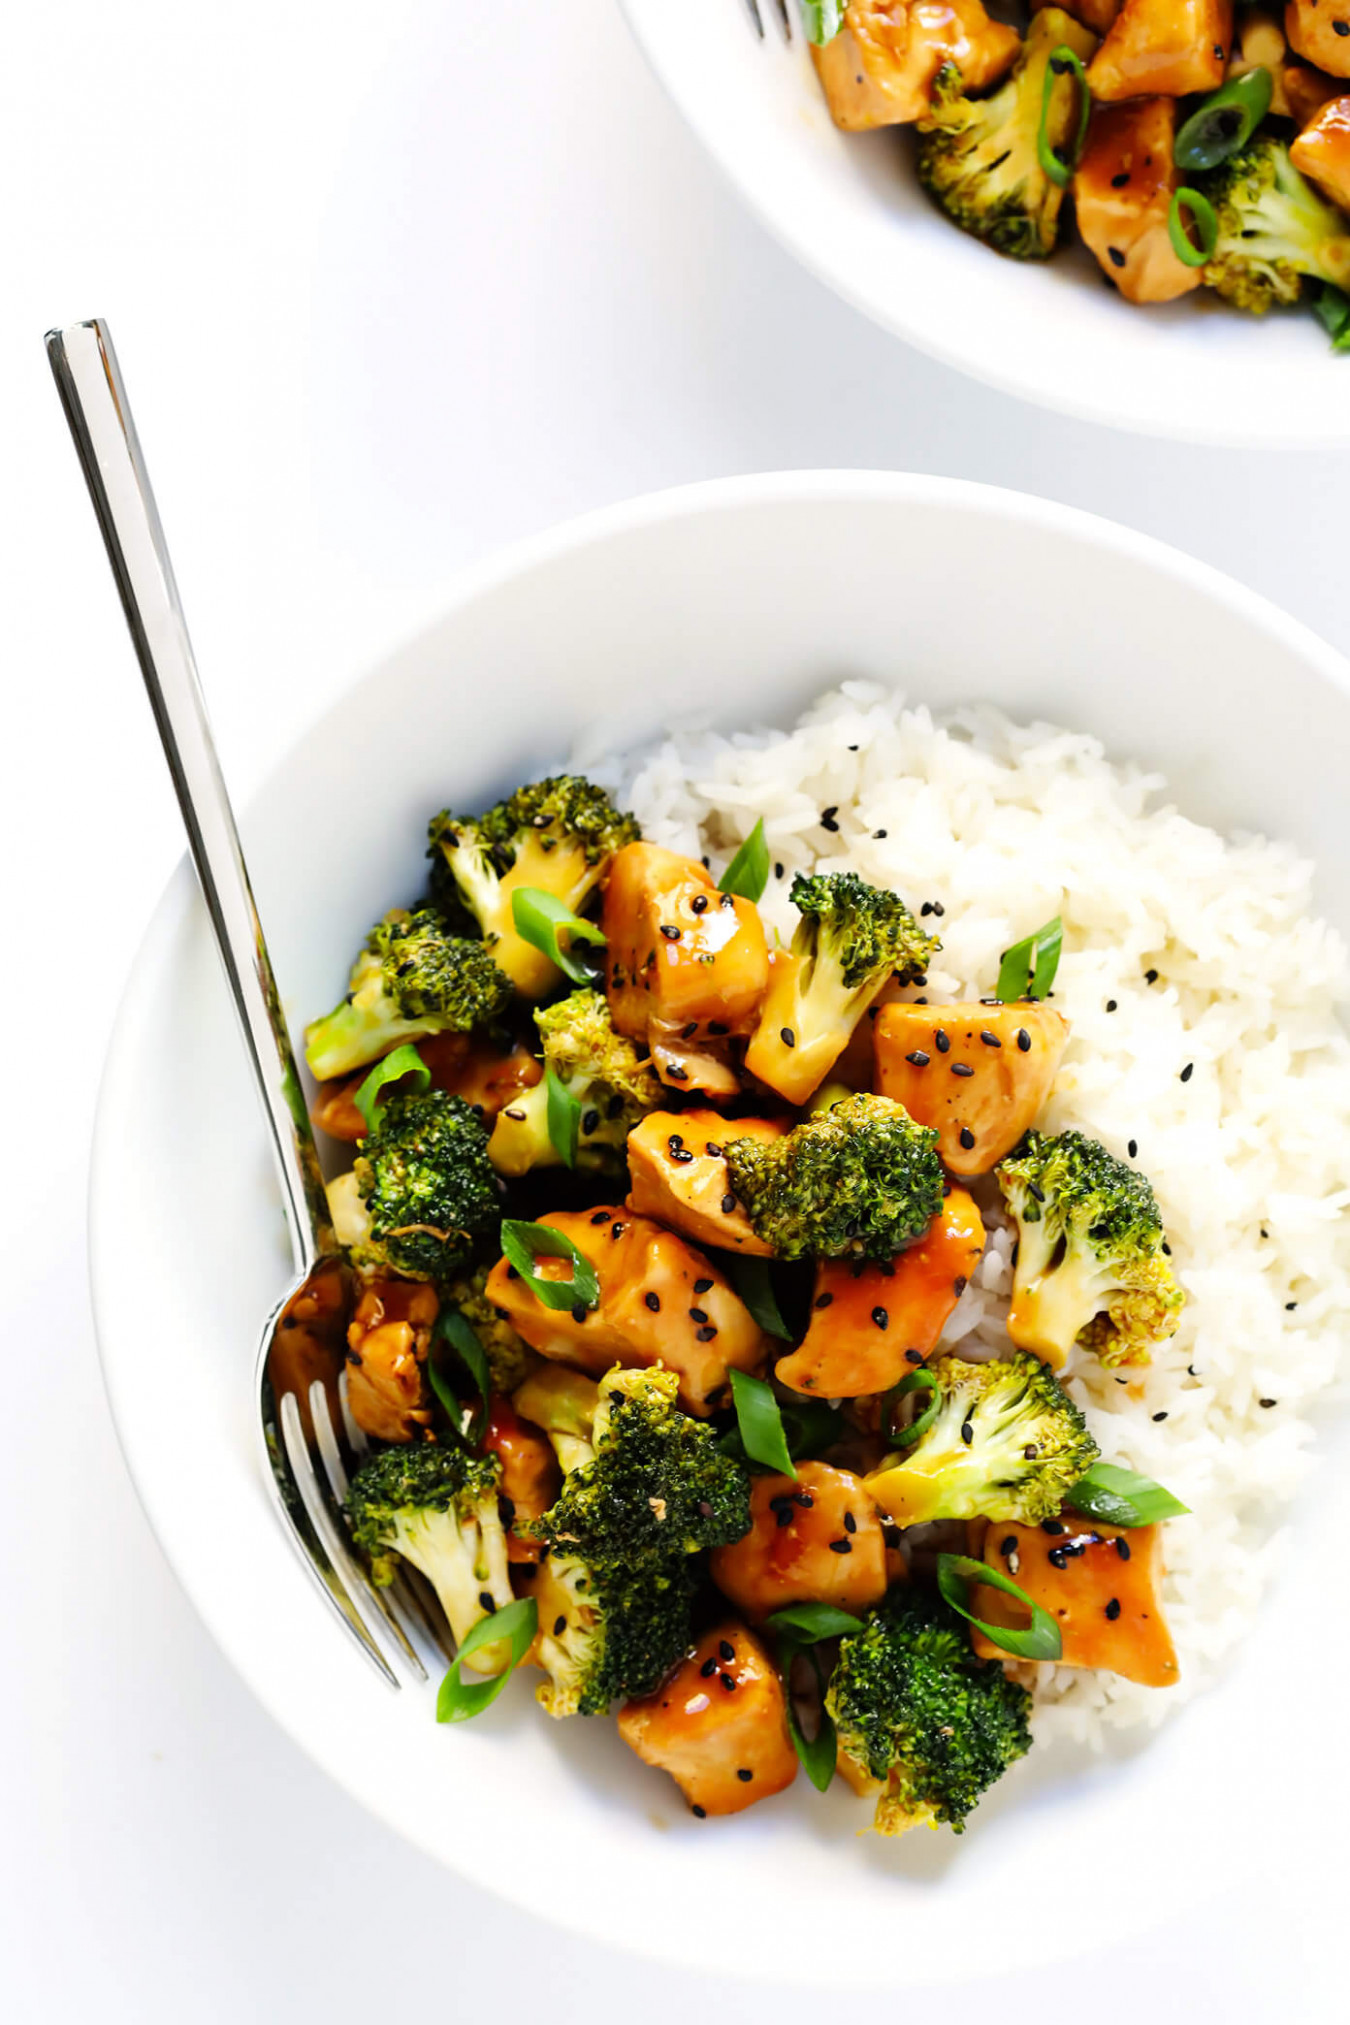 10 Minute Chicken And Broccoli - Dinner Recipes Quick Healthy